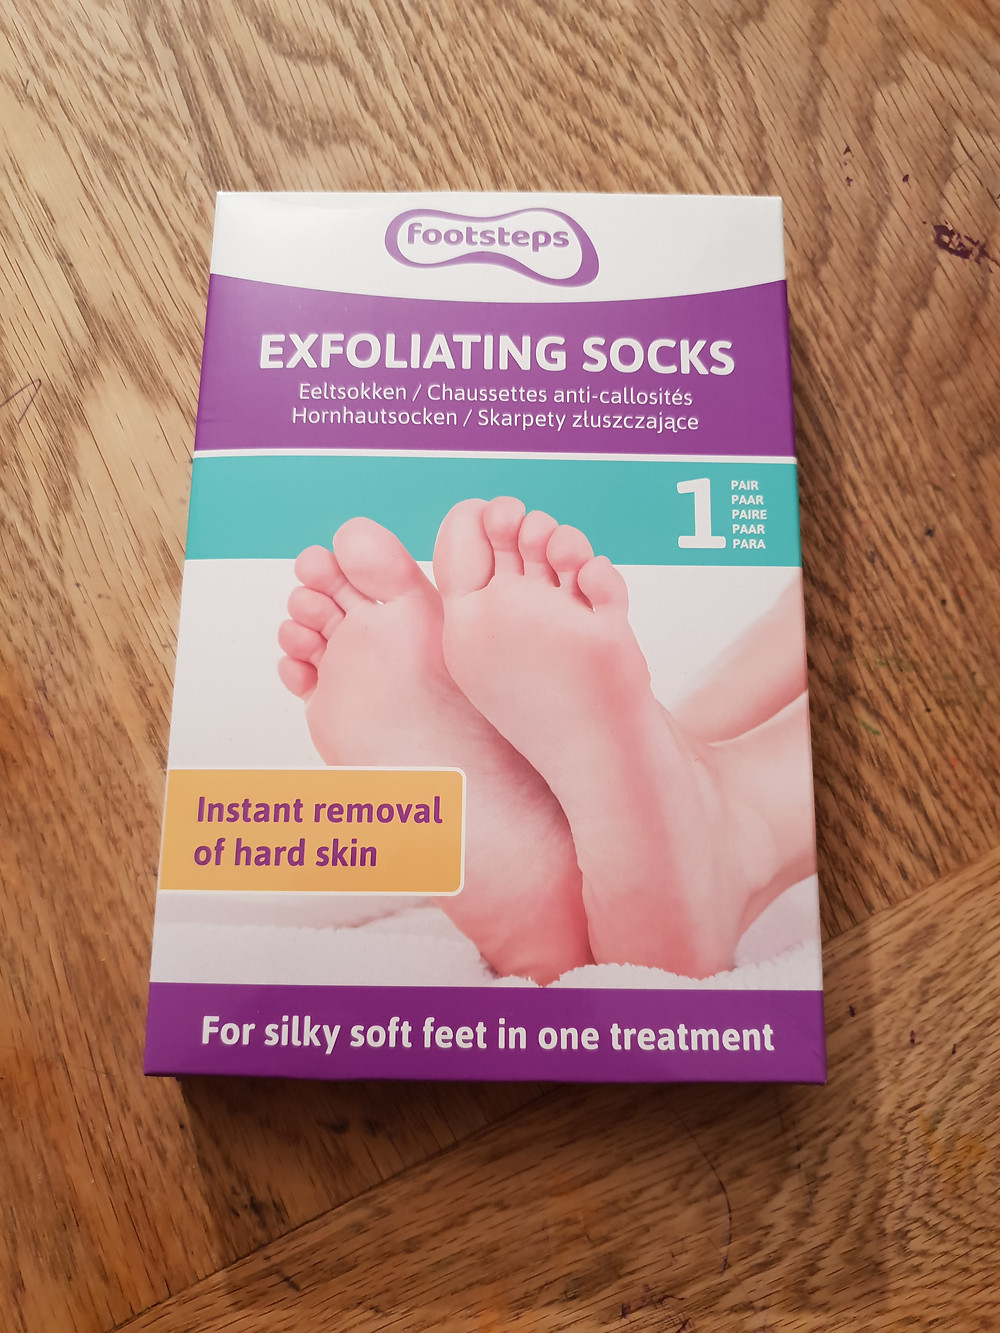 Exfoliating socks de Footsteps avis